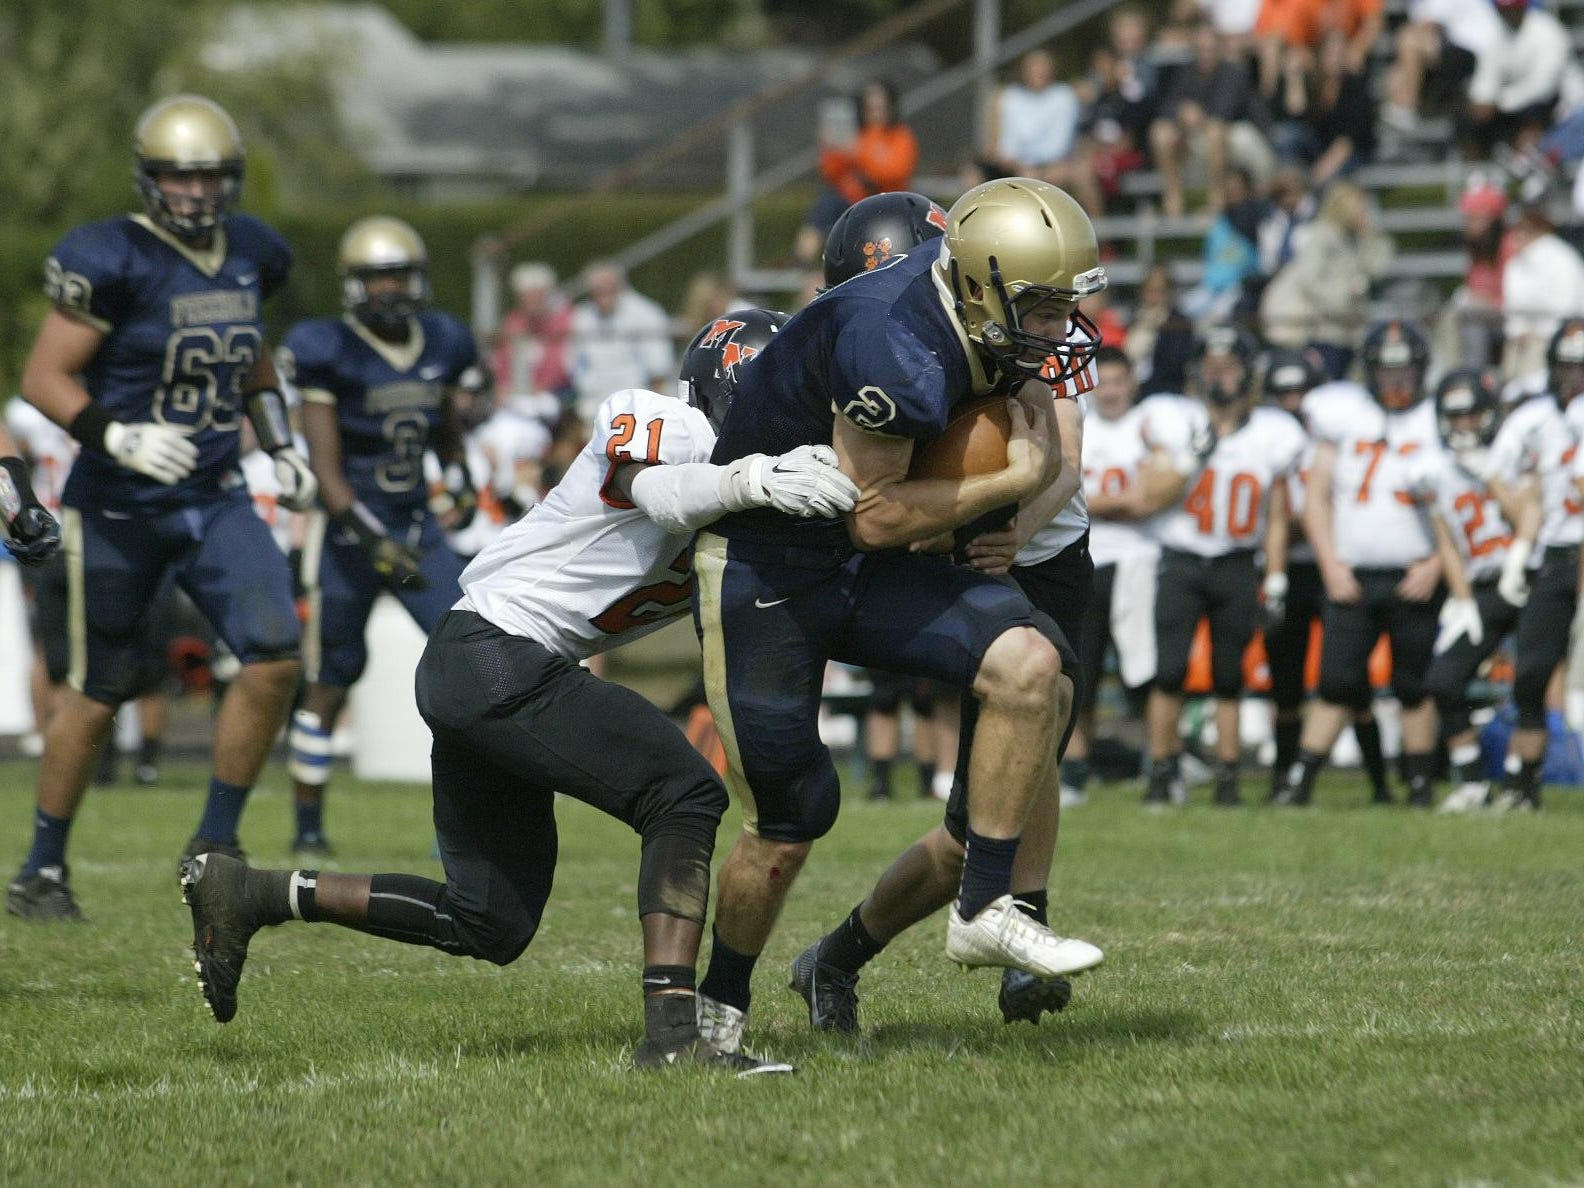 Freehold High School quarterback Jake Curry runs through two Middletown North defenders enroute to a big gain in the second quarter during a Shore Conference game Saturday afternoon, at Freehold.